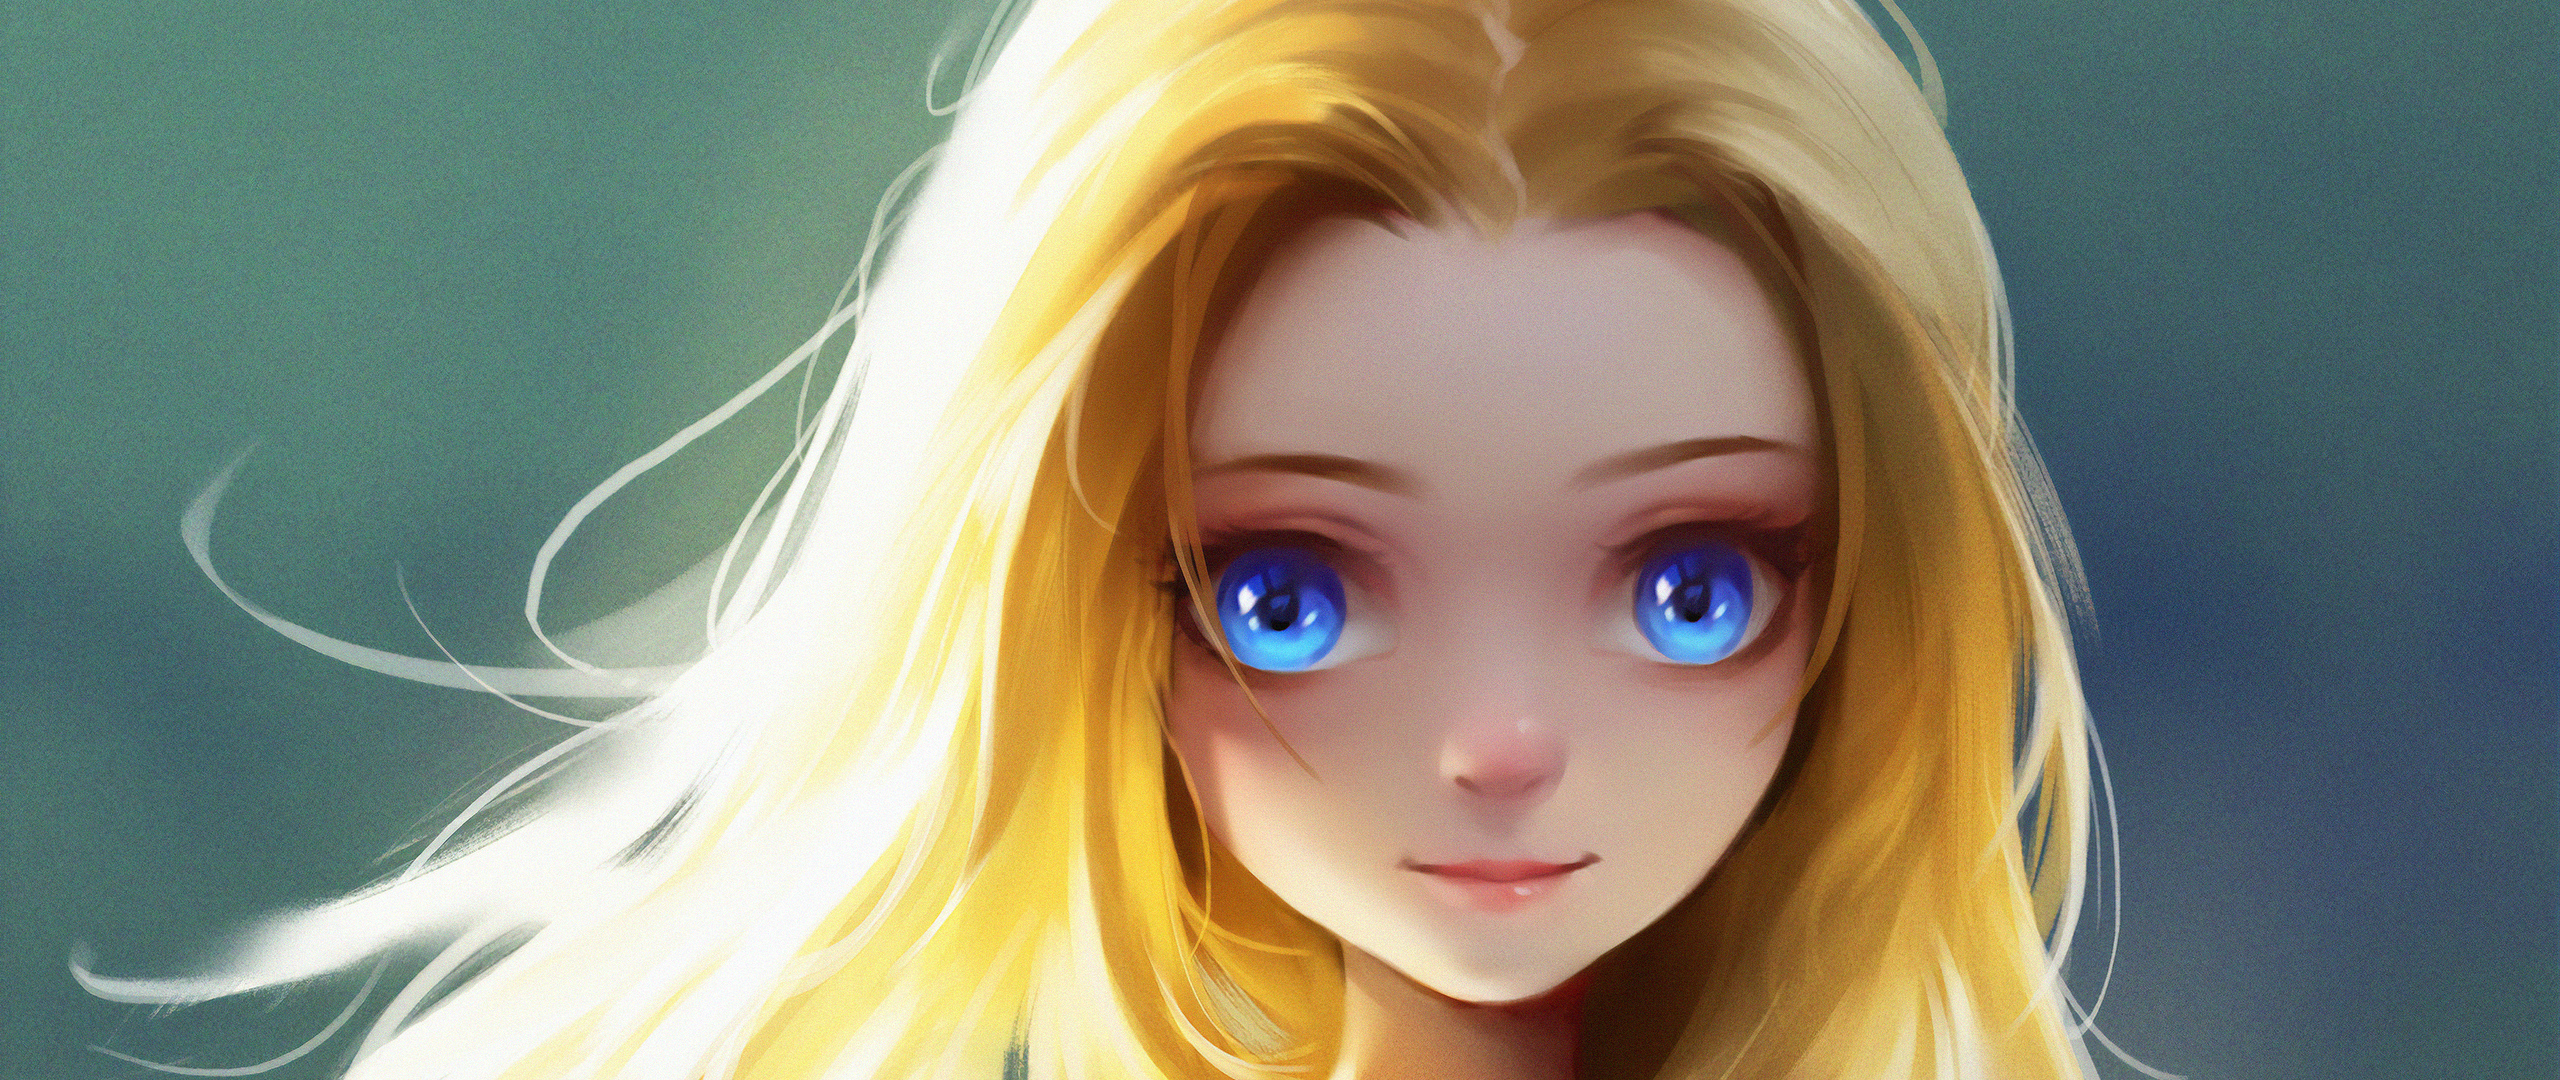 cute-little-blonde-girl-blue-eyes-digital-art-83.jpg